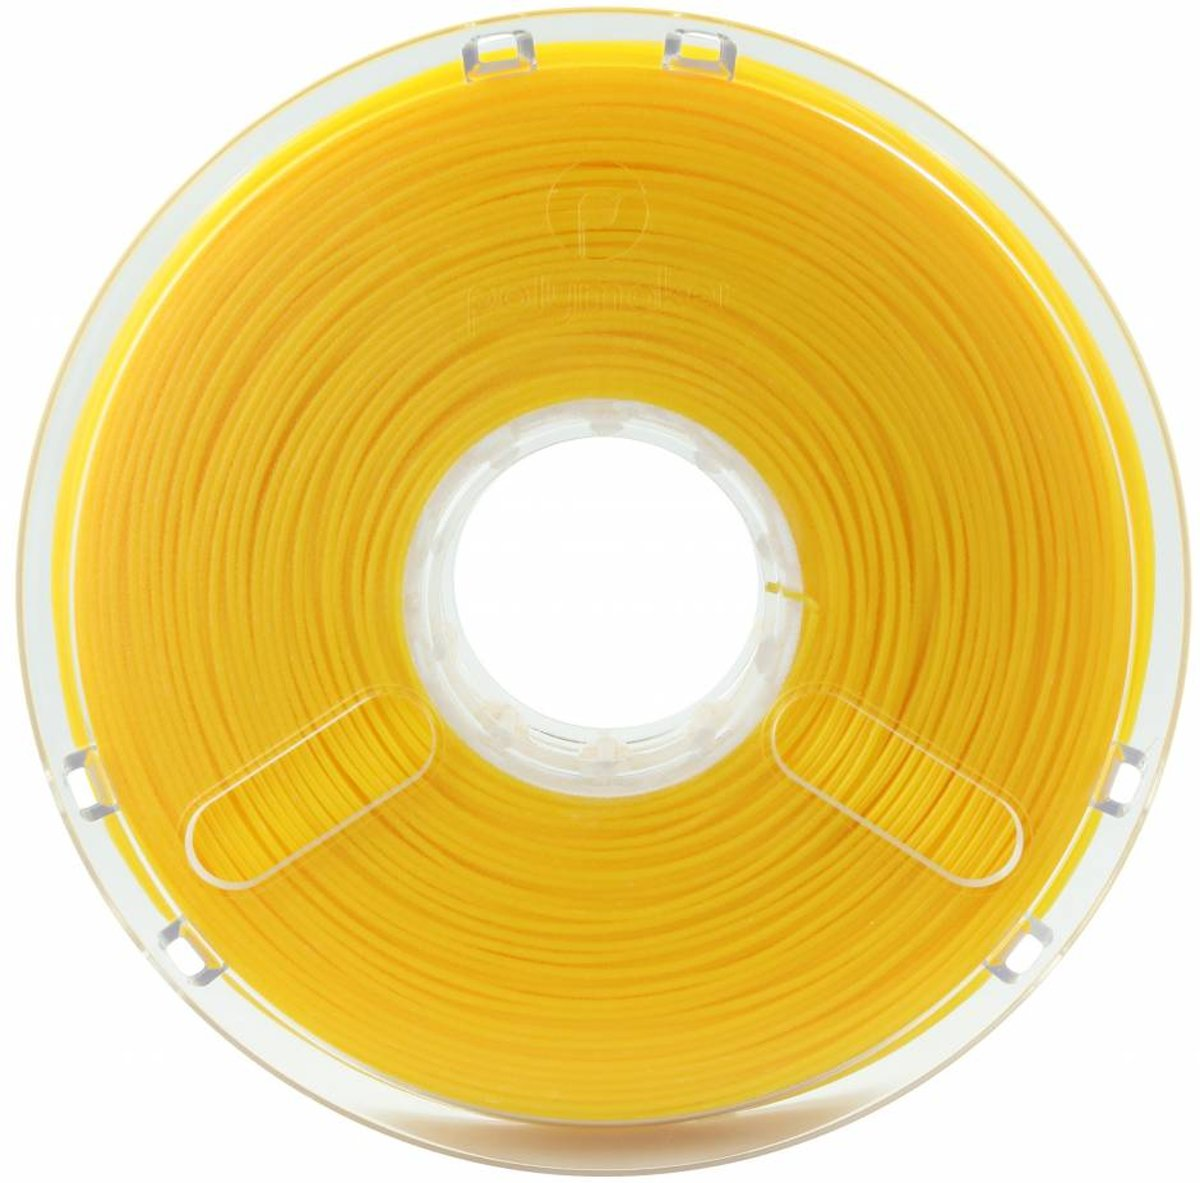 Polymaker Filament voor 3D-printer PolyMax PLA Jam Free Technology 2.85 mm 0.75 kg - True Yellow